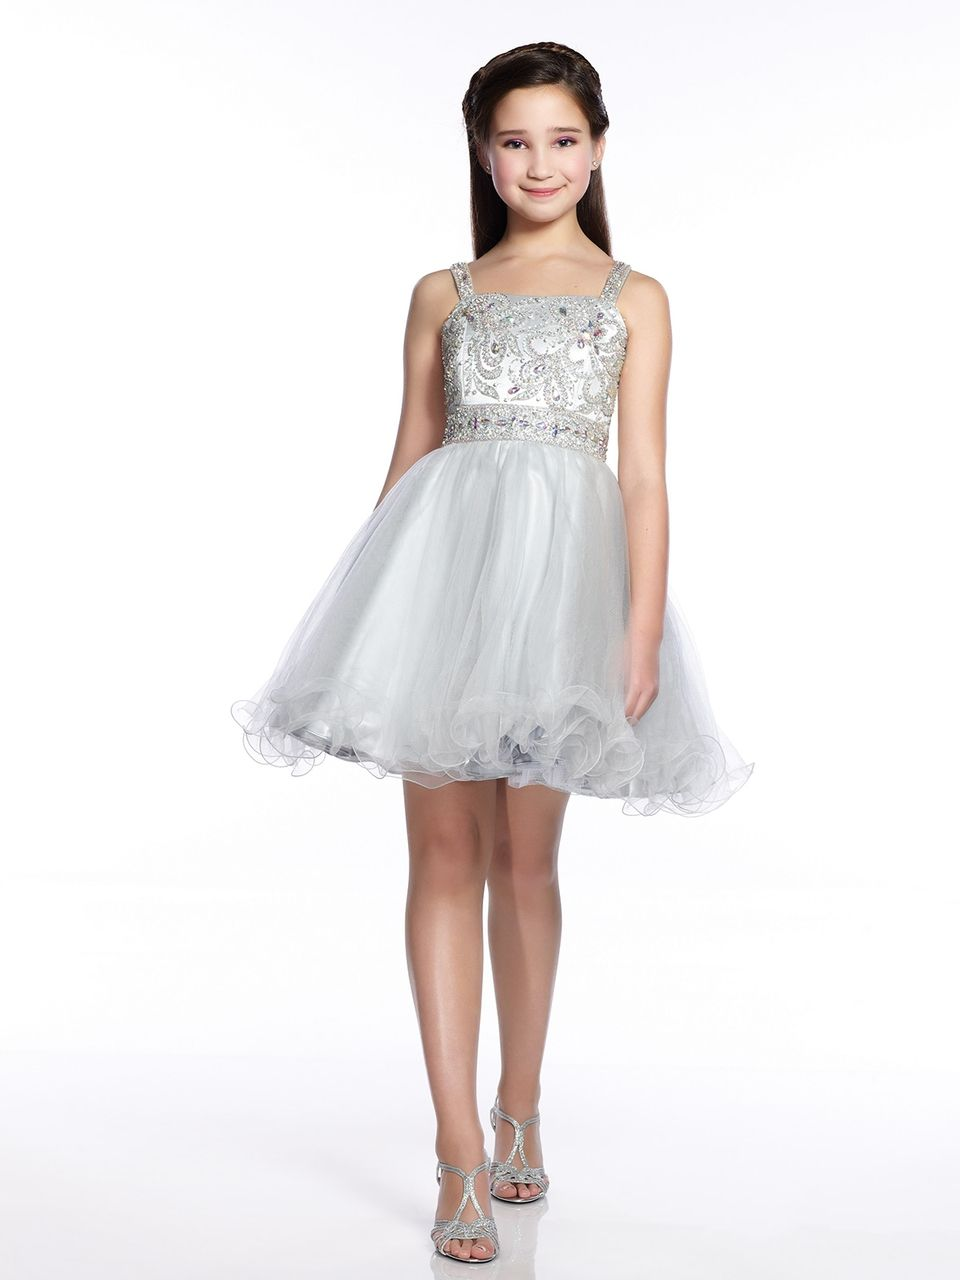 Lexie Girls Cocktail Dress Tw21545 Graduation Dresses Girls And